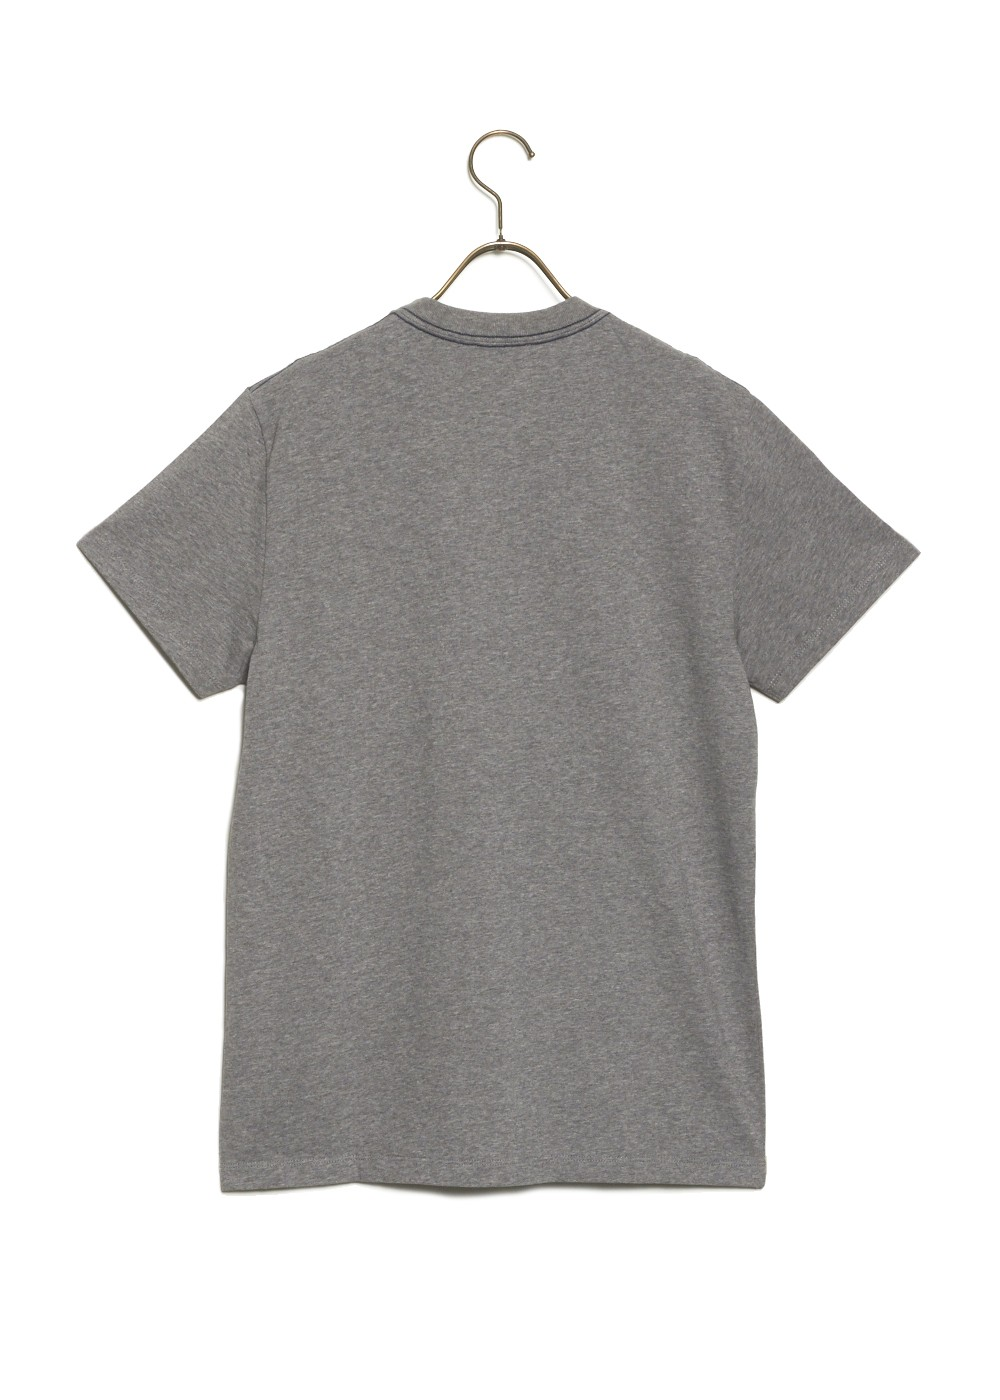 【最大51%OFF】TEE-SHIRT VENICE FOX PATCH|DARK GREY MELANGE|メンズトップス|MAISON KITSUNE